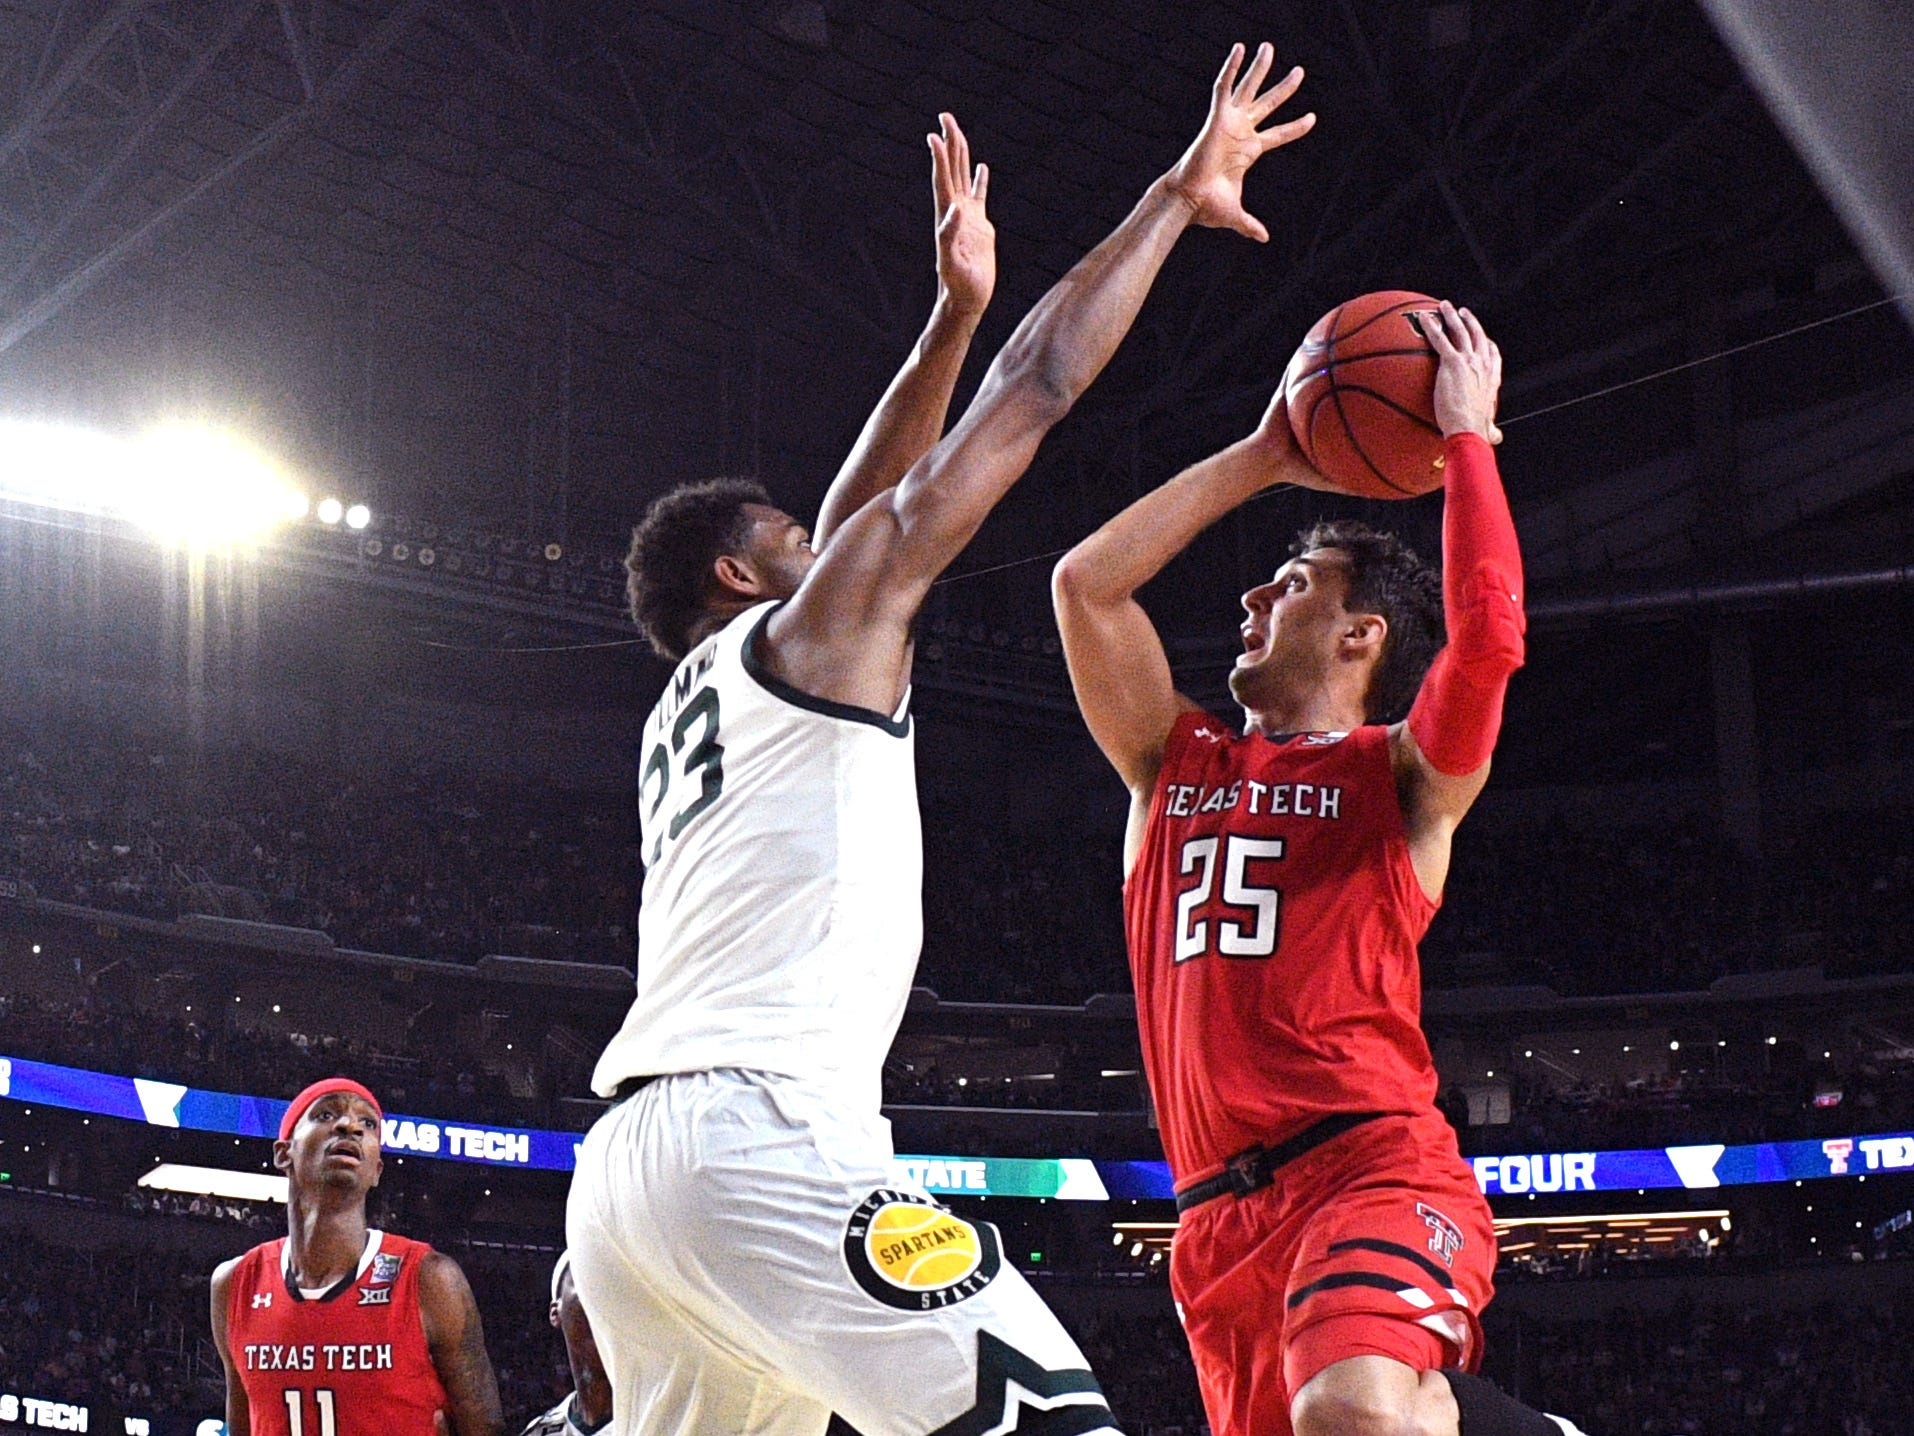 Apr 6, 2019; Minneapolis, MN, USA; Texas Tech Red Raiders guard Davide Moretti (25) shoots the ball defended by Michigan State Spartans forward Xavier Tillman (23) in the semifinals of the 2019 men's Final Four at US Bank Stadium. Mandatory Credit: Robert Deutsch-USA TODAY Sports